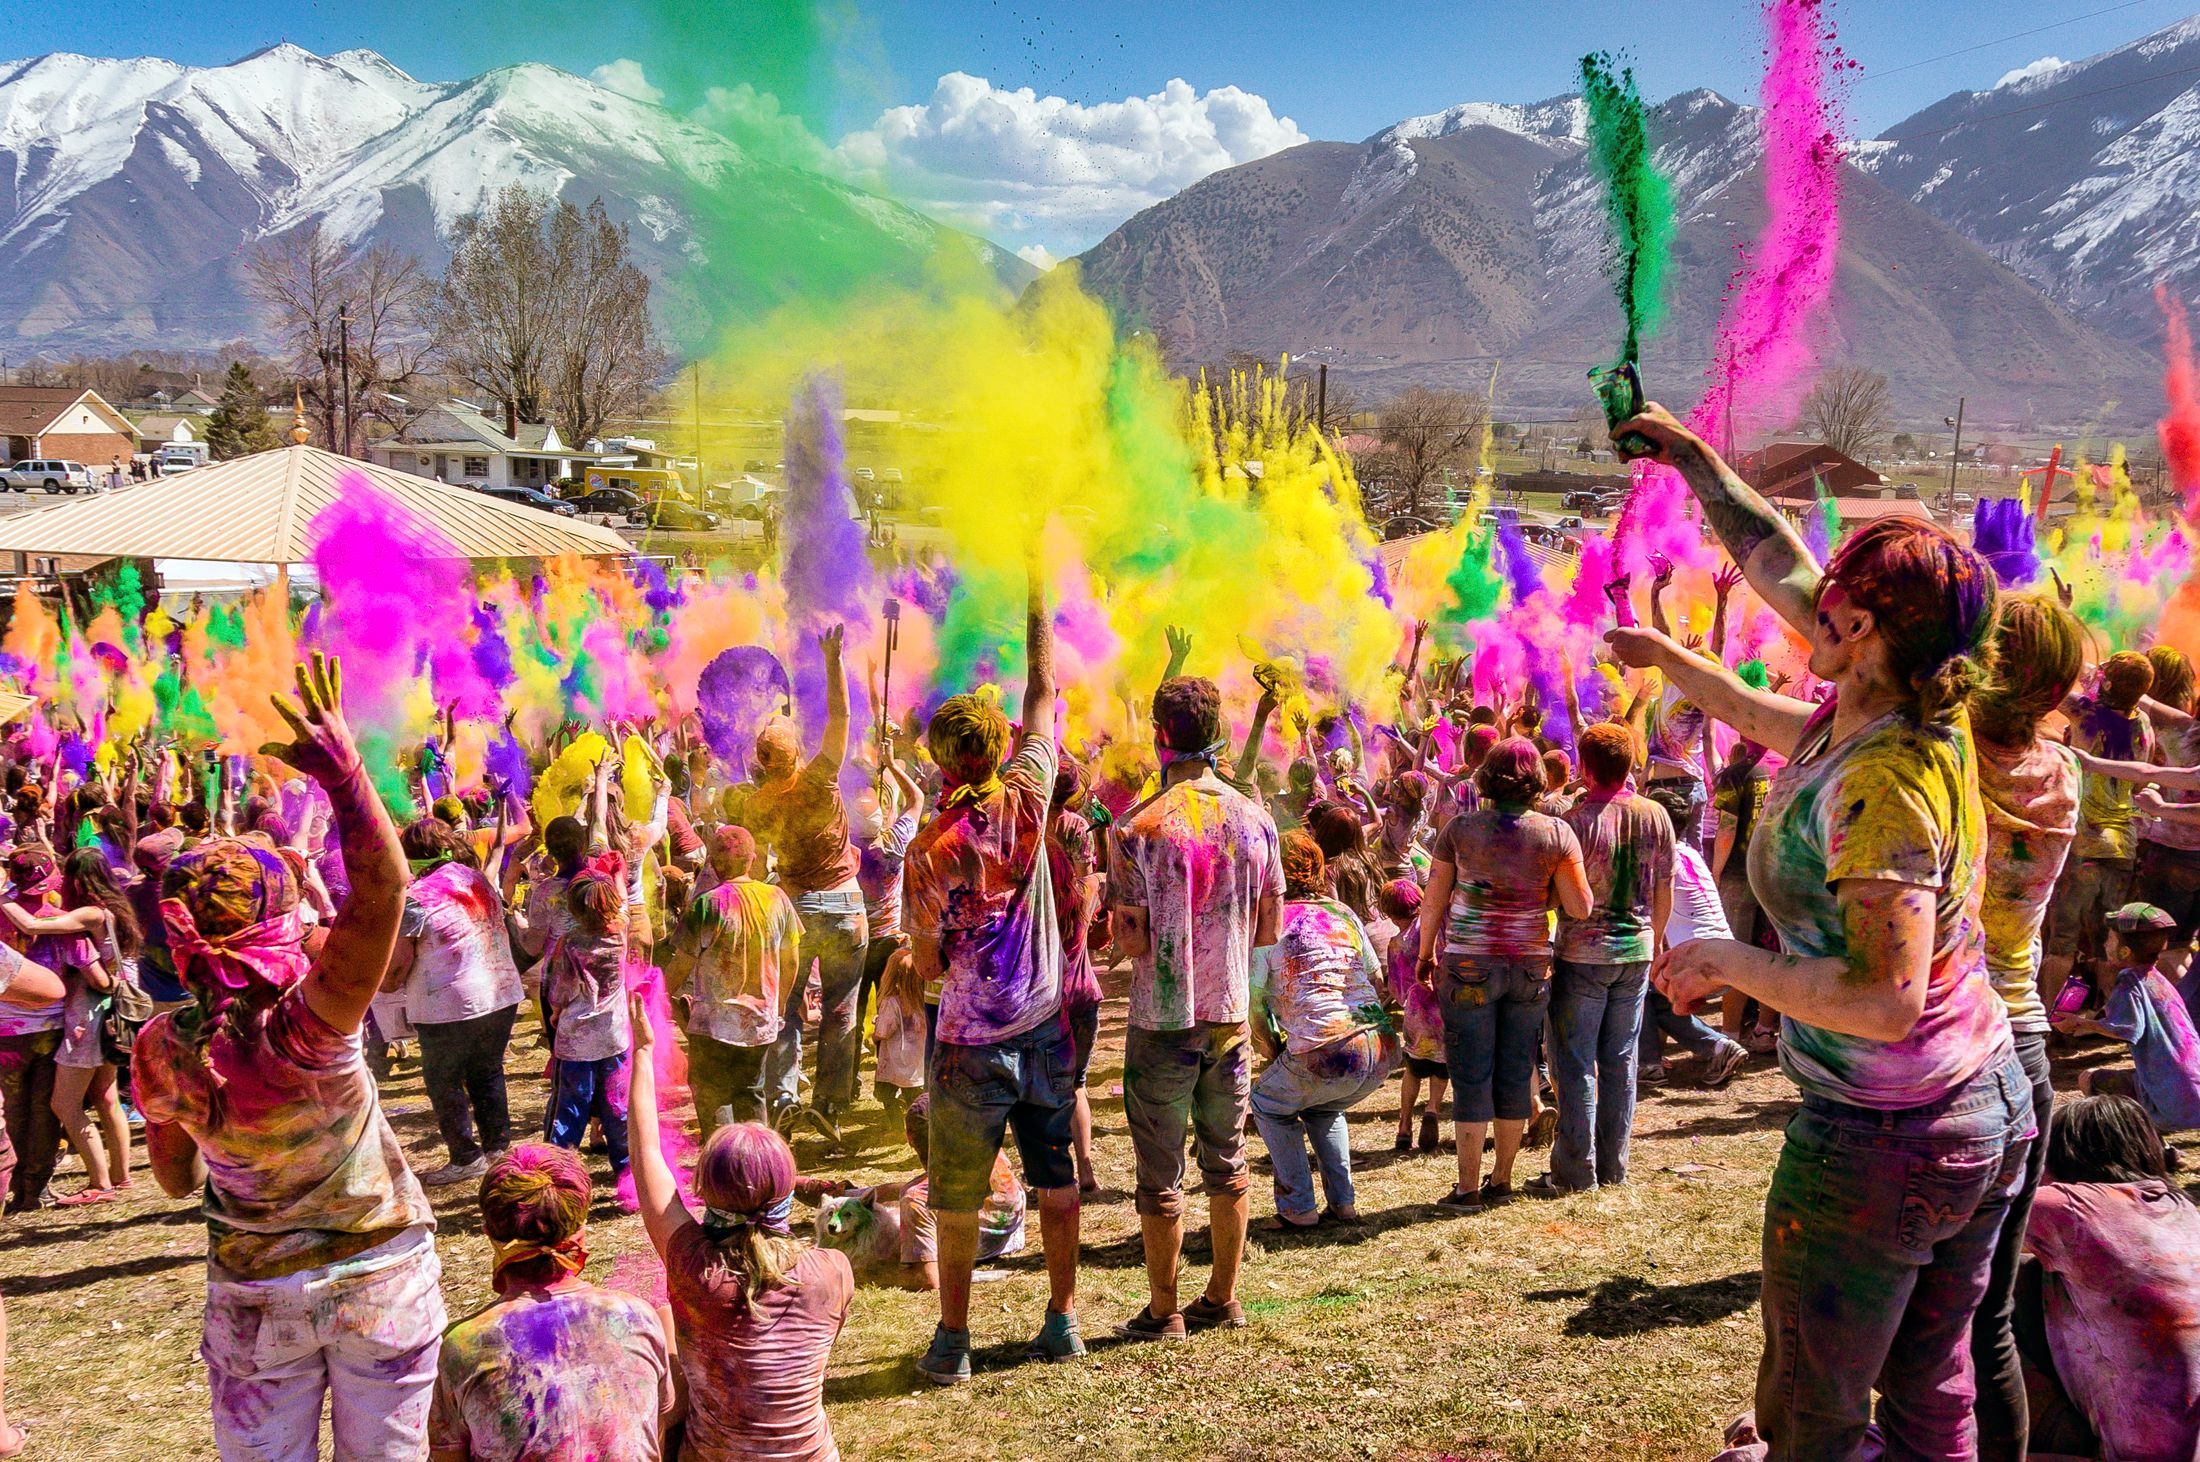 Holi 2022 Date In India Calendar.Holi Festival Dates When Is Holi In 2018 2019 2020 2021 2022 And 2023